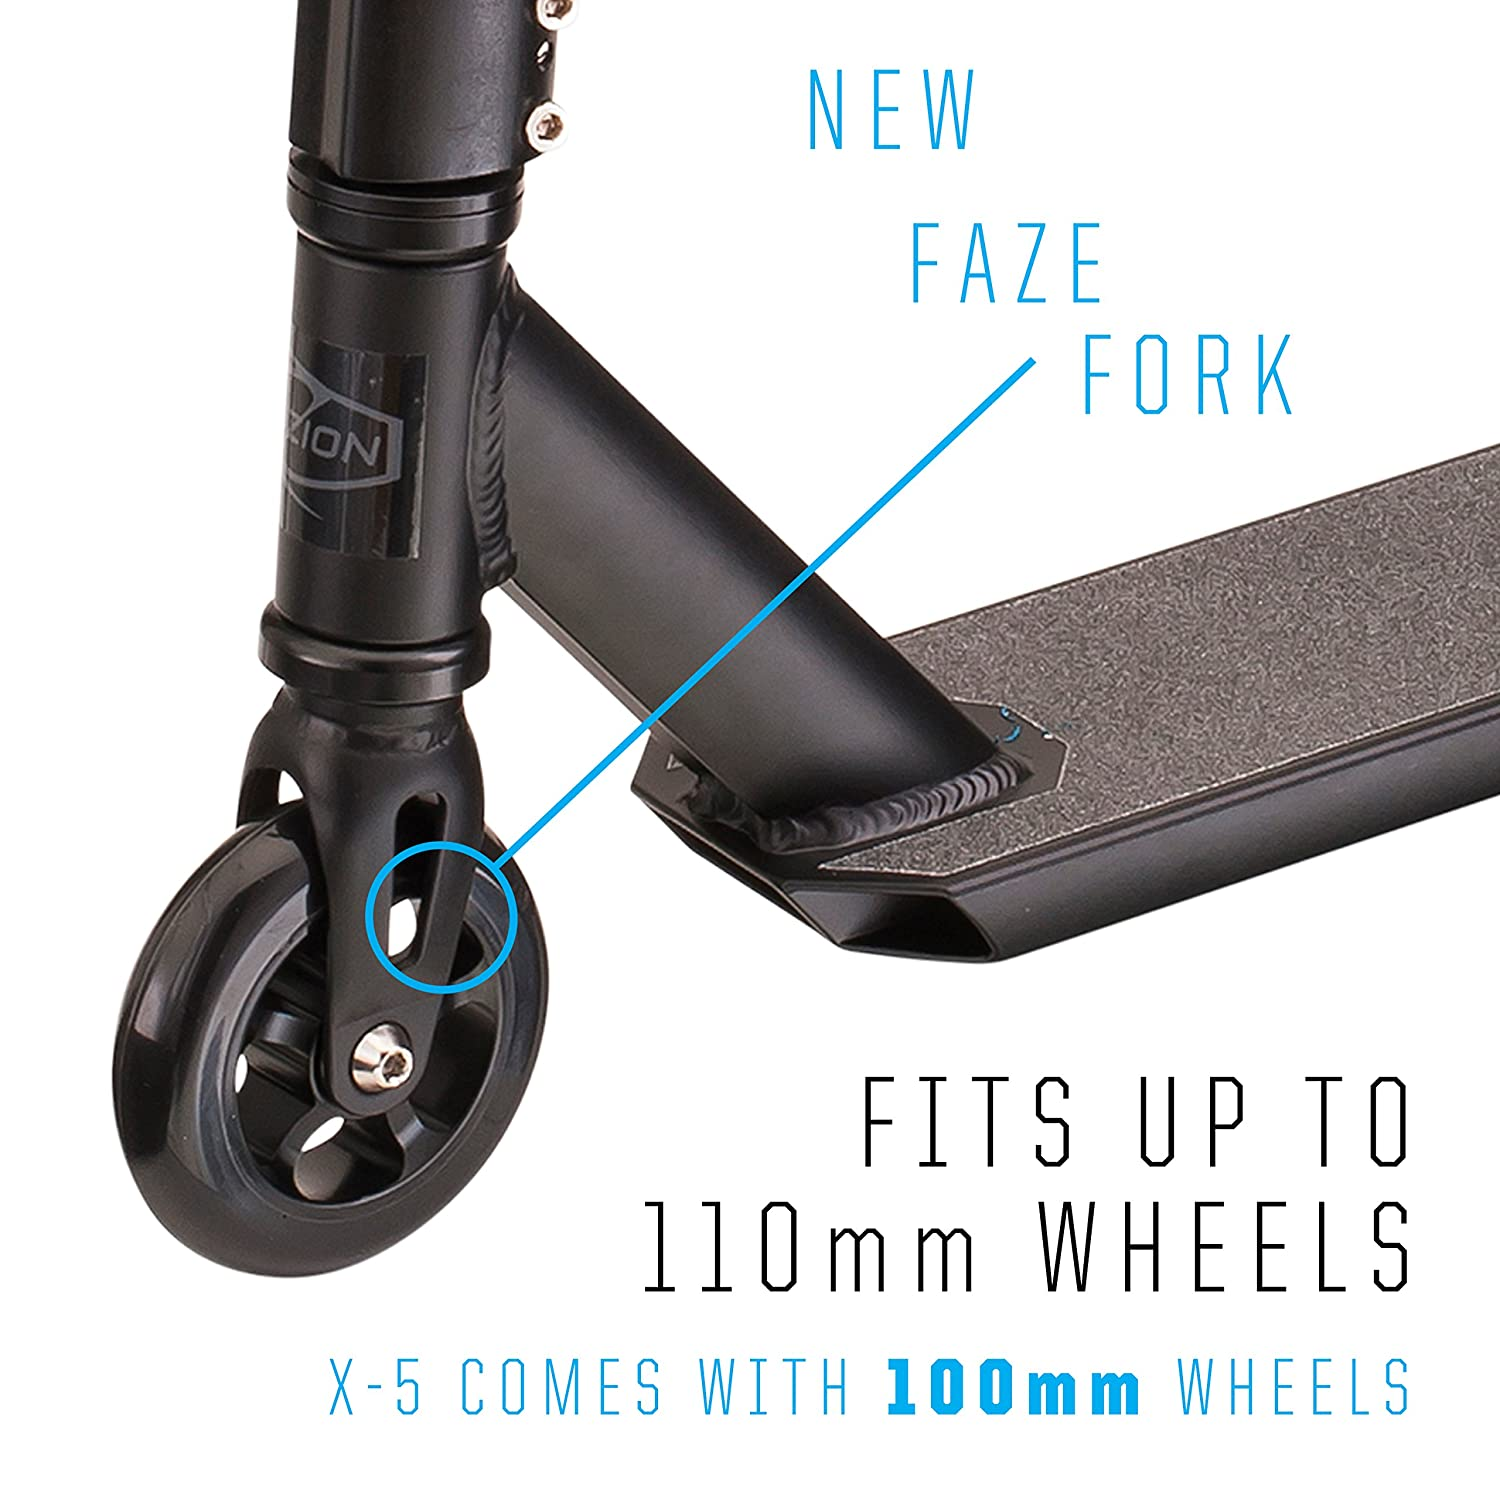 Fuzion X-5 Pro Scooters - Trick Scooter - Beginner Stunt Scooters for Kids 8 Years and Up – Quality Freestyle Kick Scooter for Boys and Girls